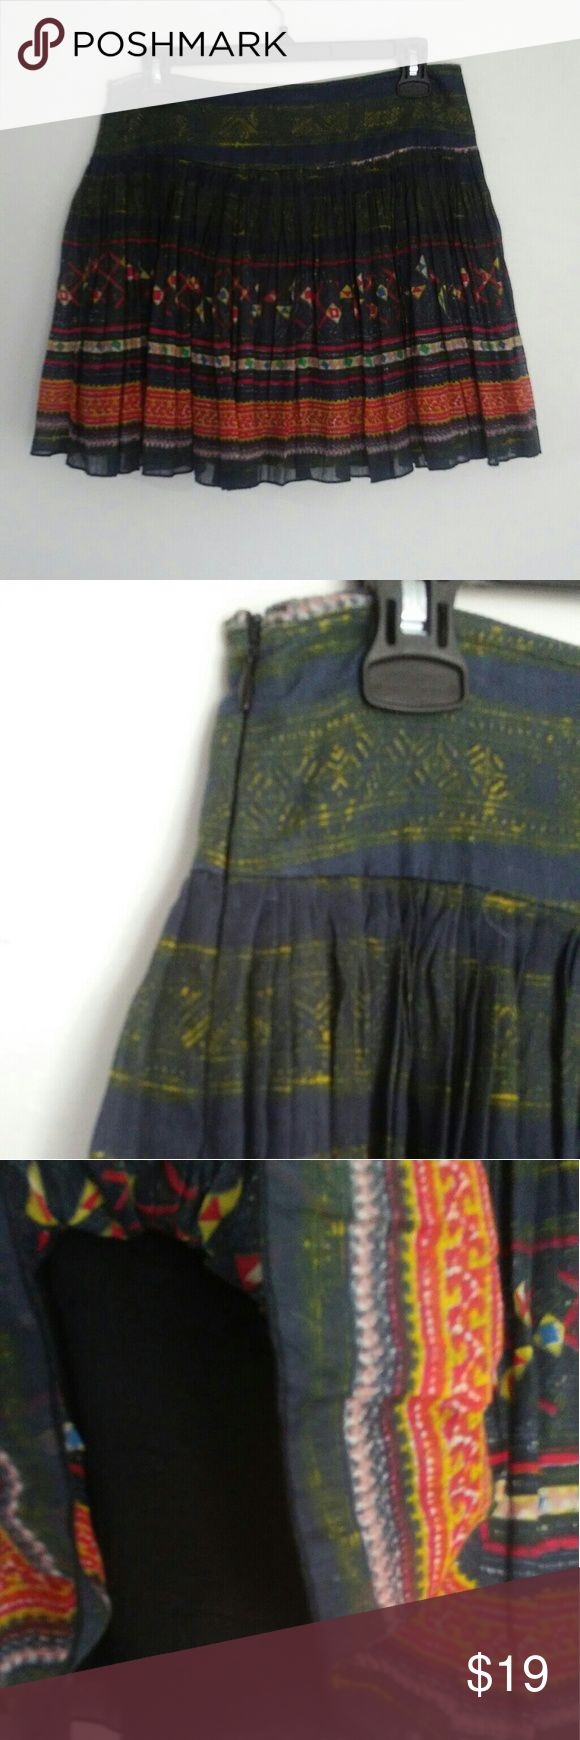 FP ONE by Free People skirt FP ONE adorable multi color skirt fully lined. Gently used. Free People Skirts Mini